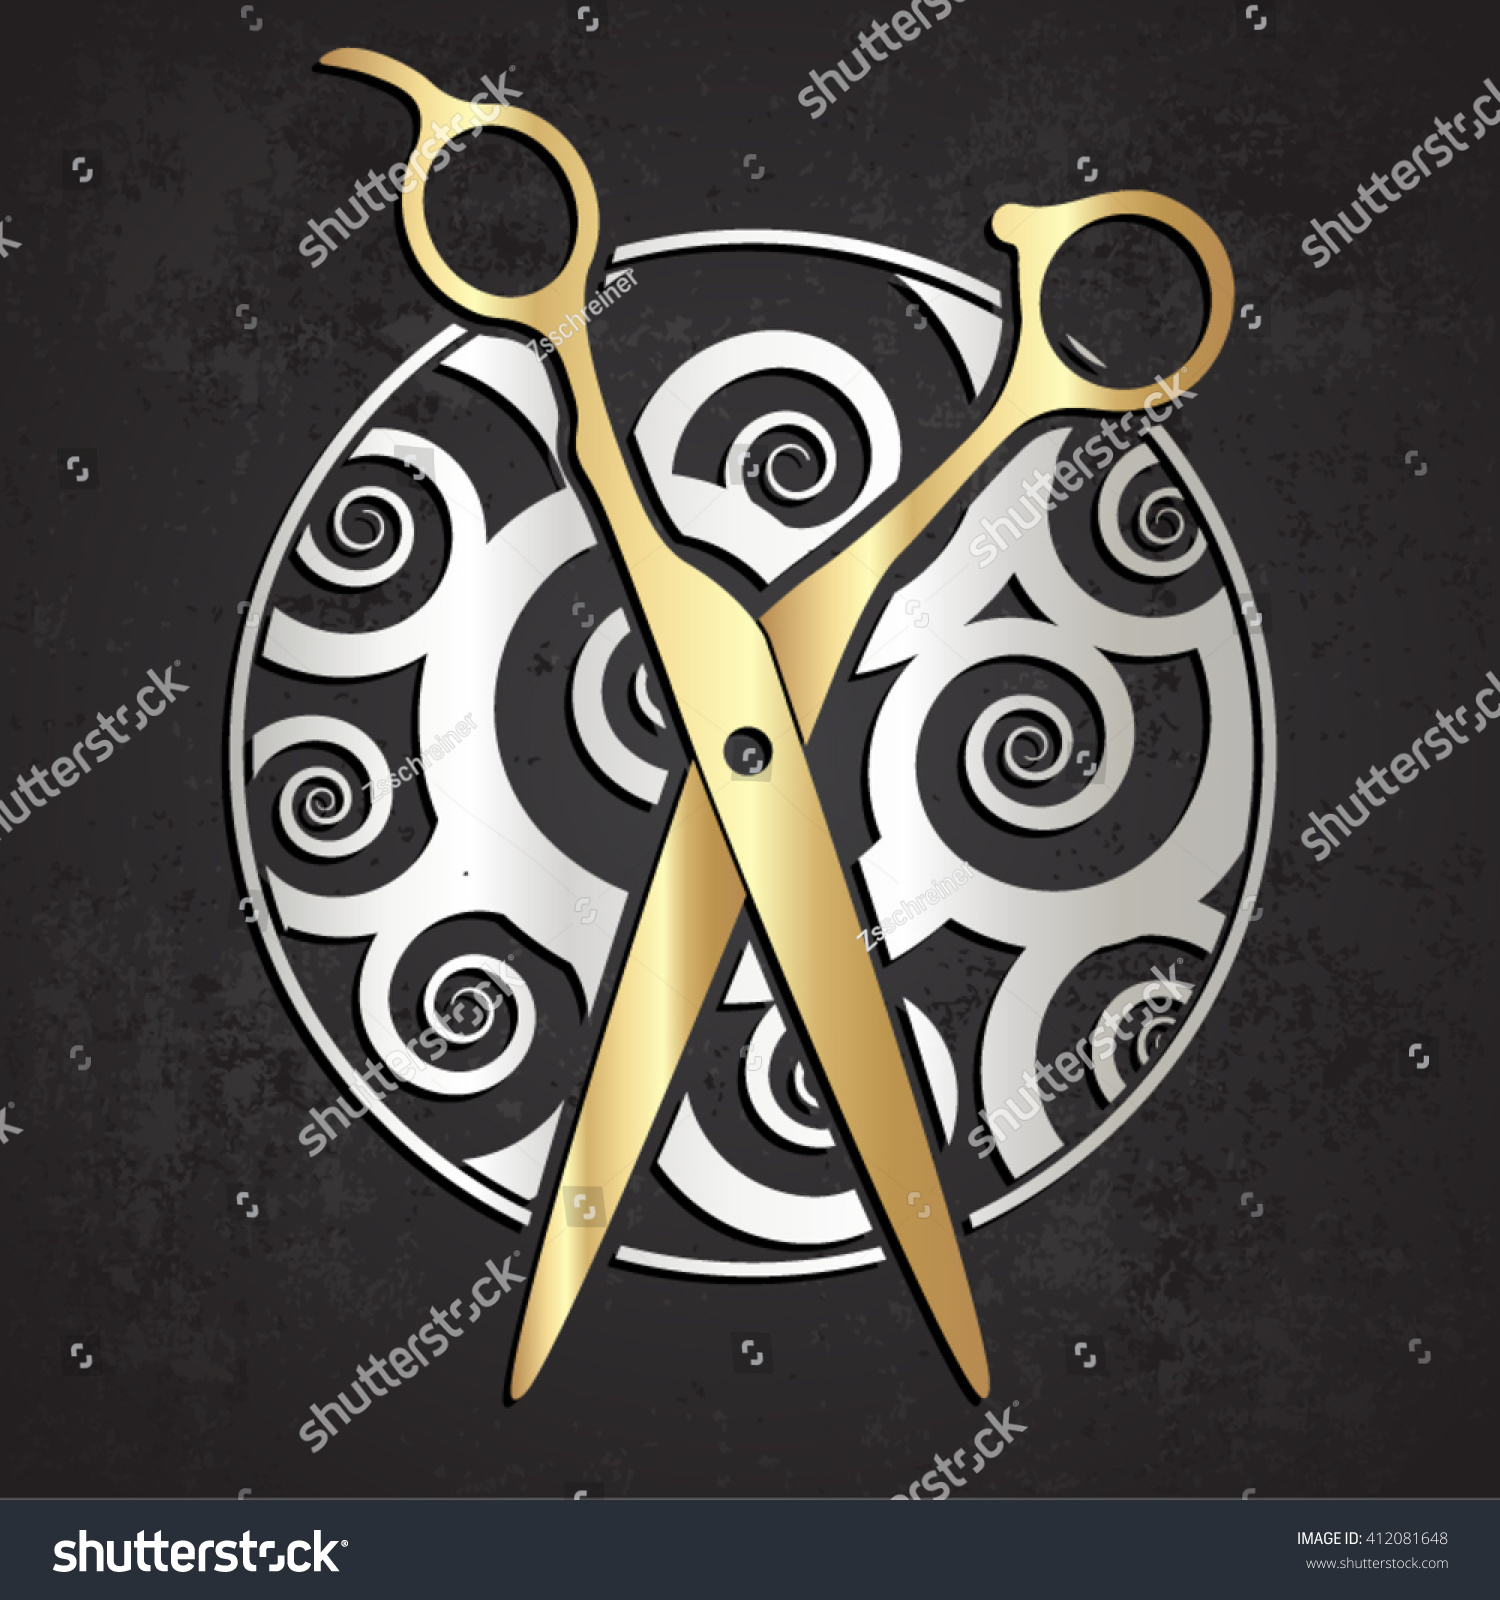 Metal scissor symbol fashion theme vector stock vector 412081648 metal scissor symbol fashion theme vector illustration biocorpaavc